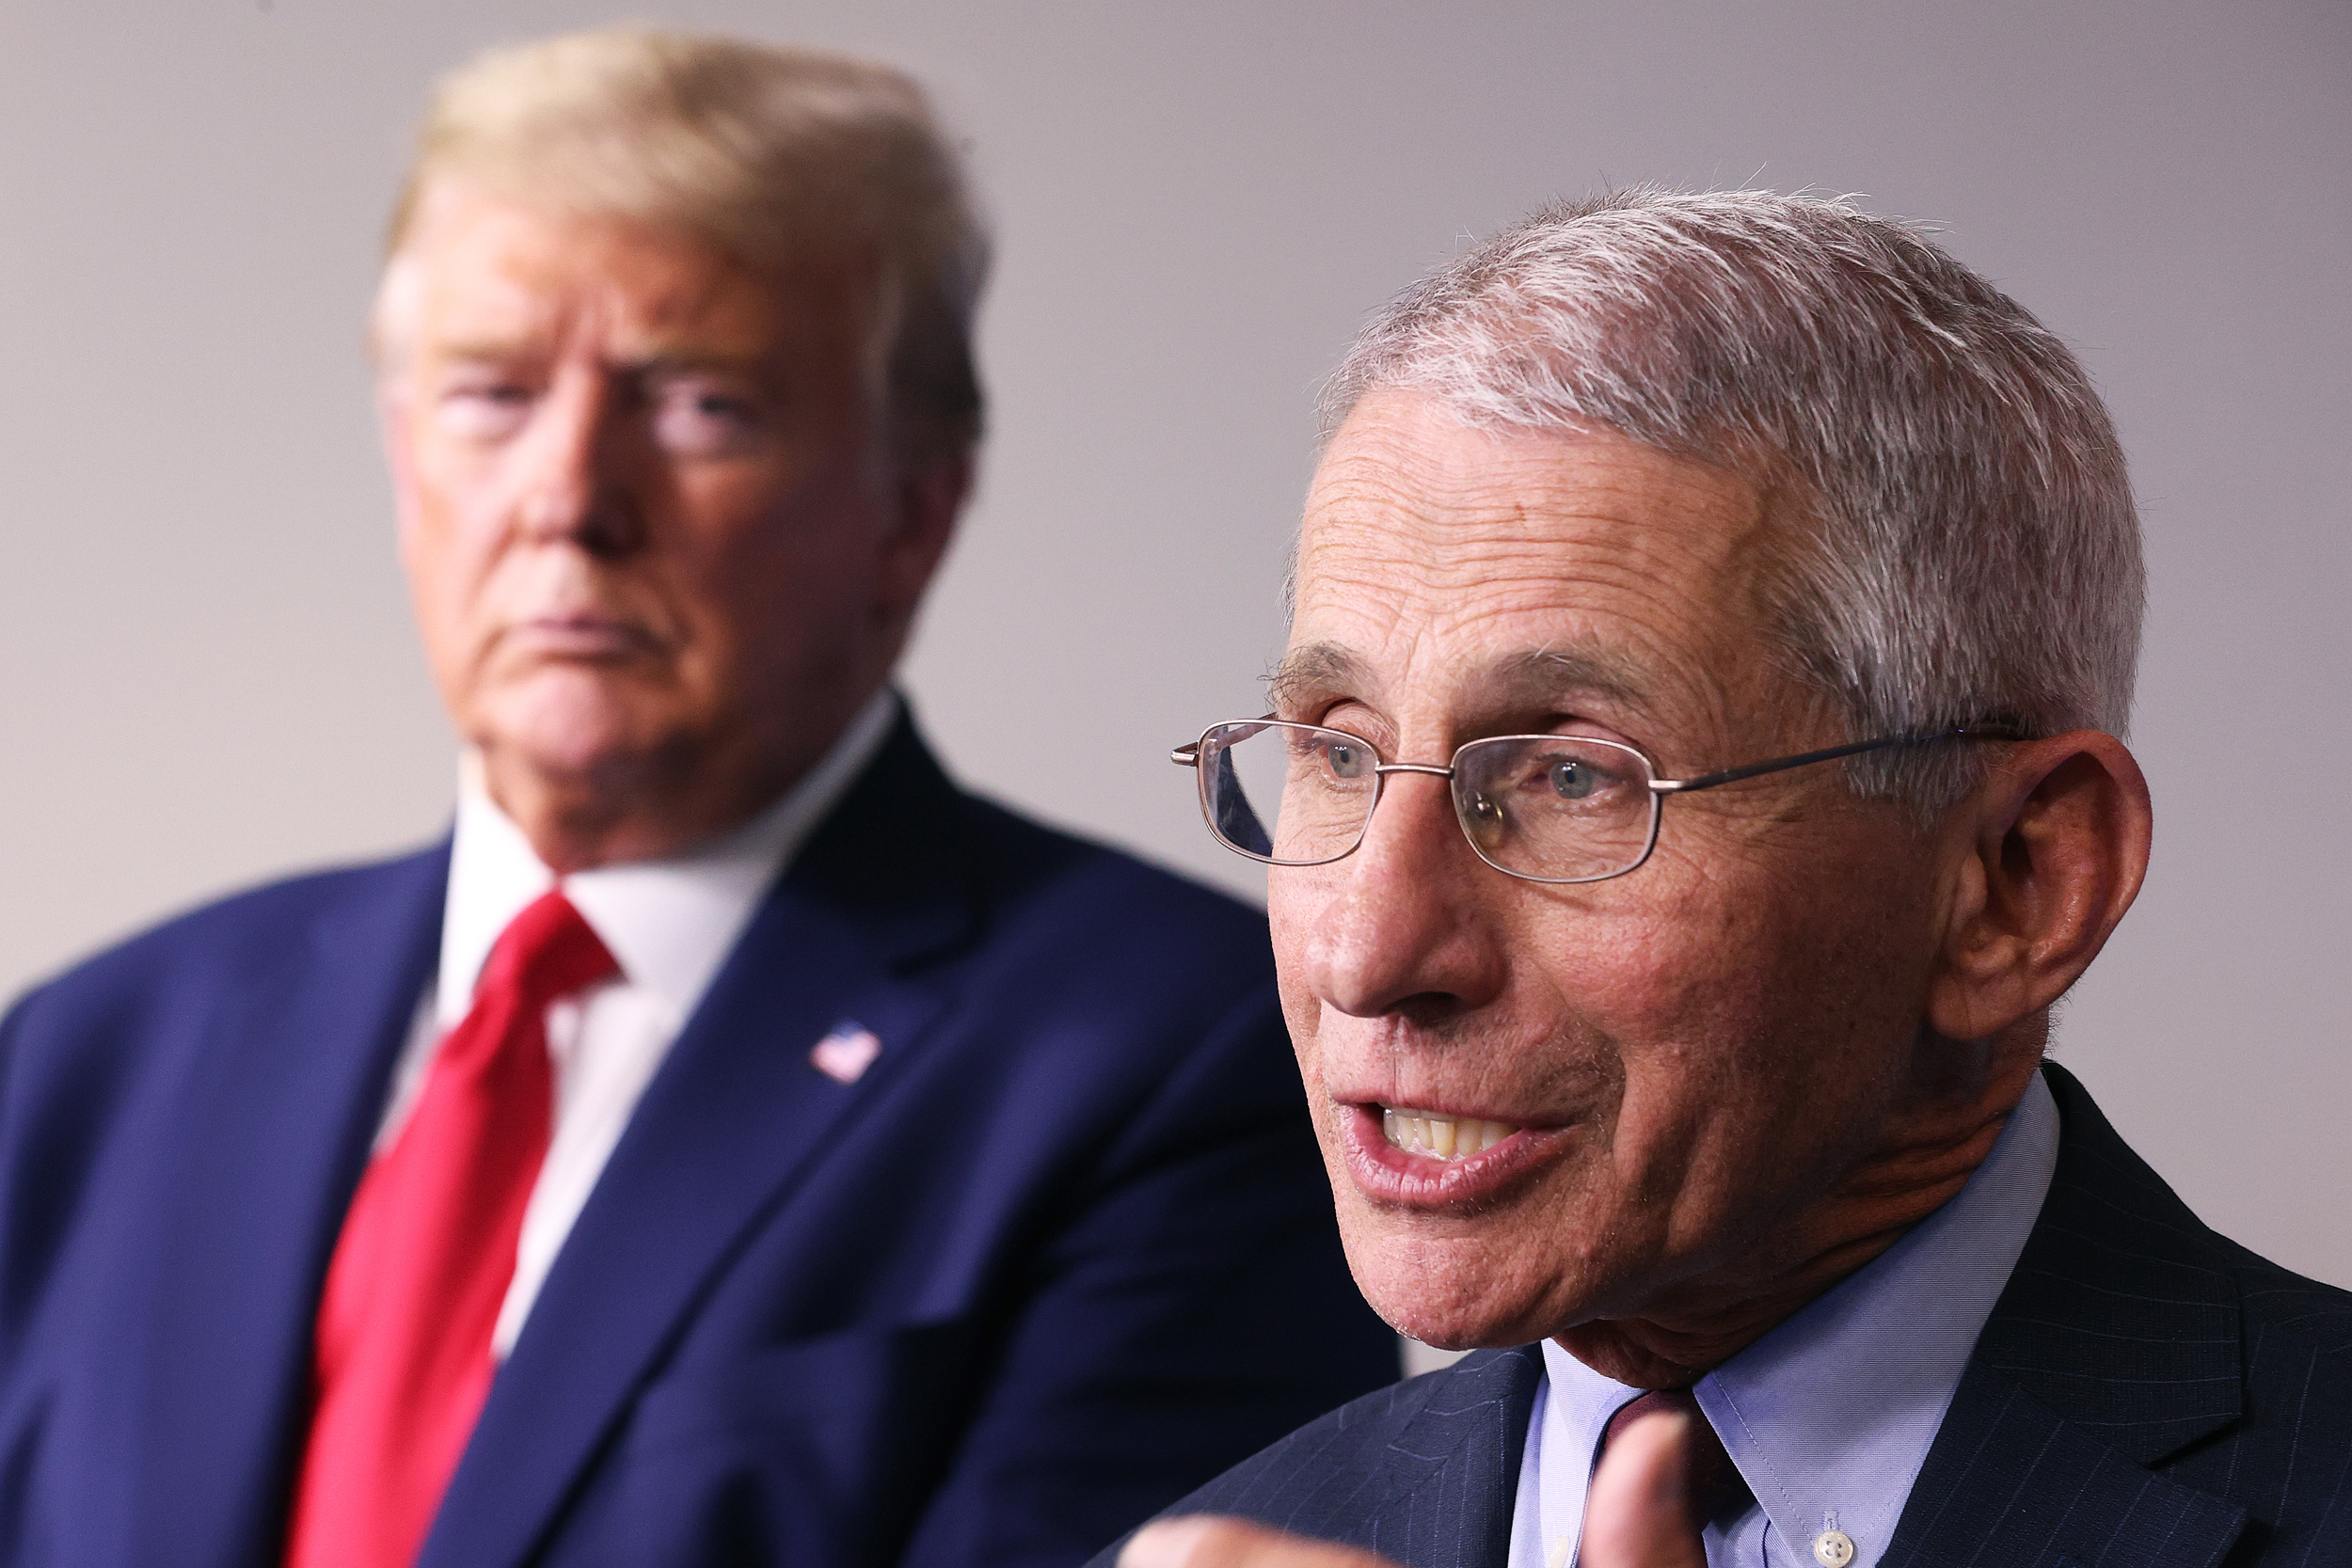 White House blasts Fauci after he says U.S. is 'poorly' prepared for  Covid-19 winter